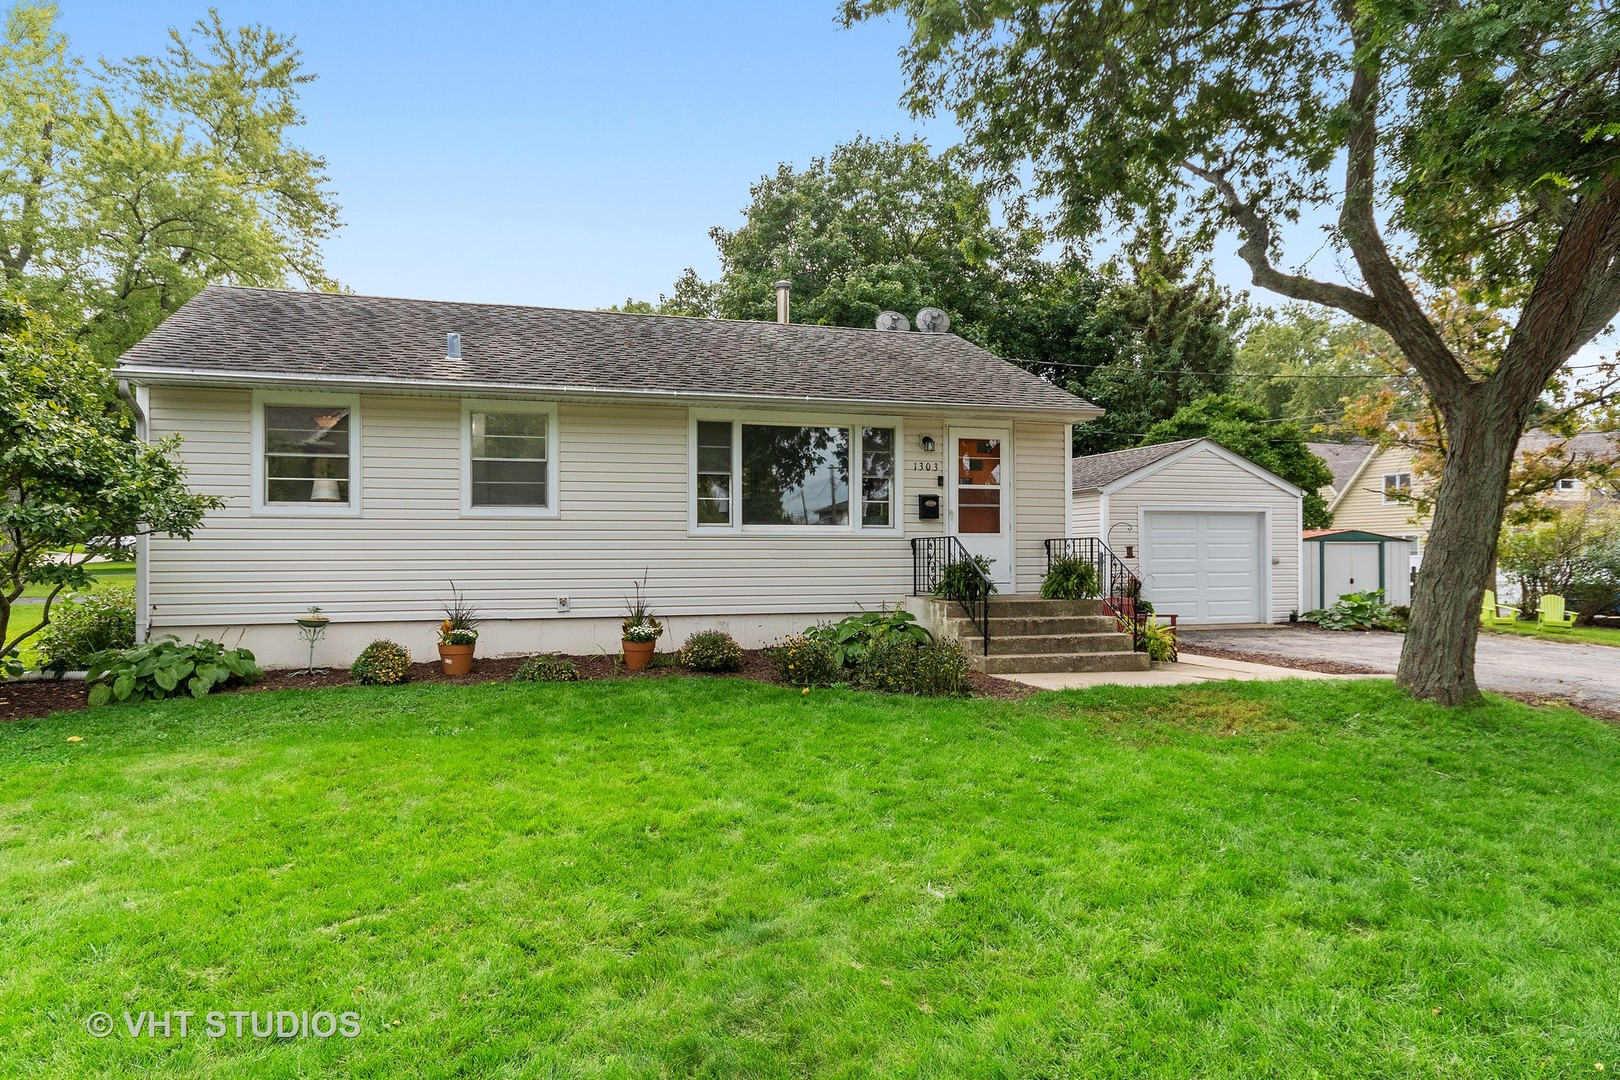 Photo for 1303 Indiana Street, St. Charles, IL 60174 (MLS # 10545333)